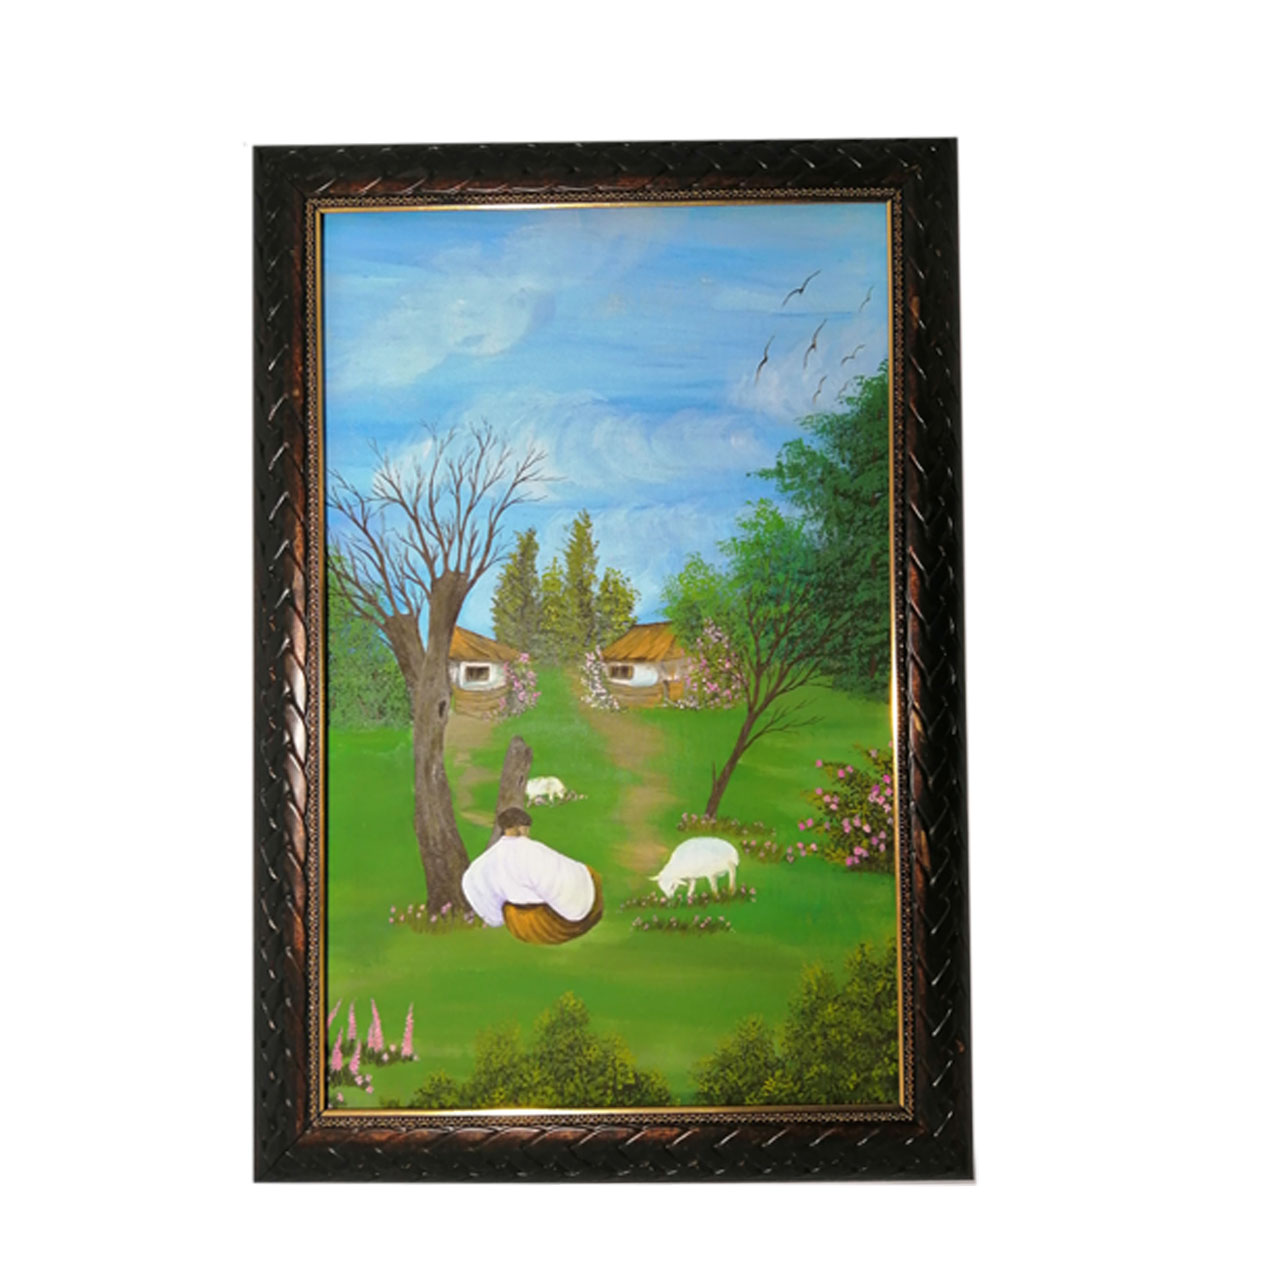 Pasture-cloth-painting